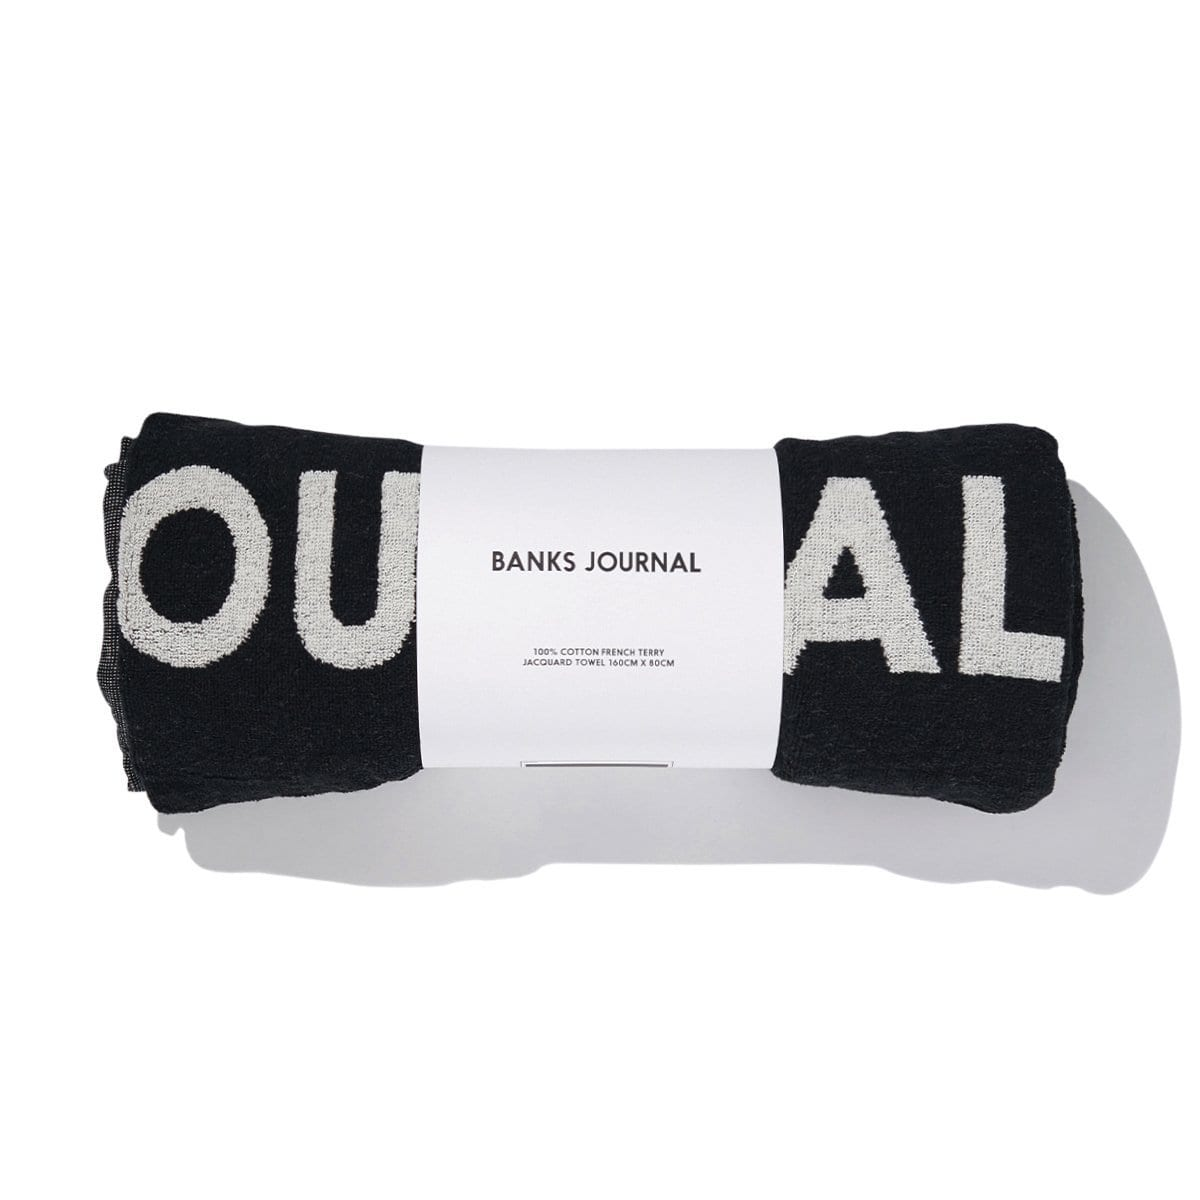 Banks Journal LABEL TOWEL / Neighborhood Goods